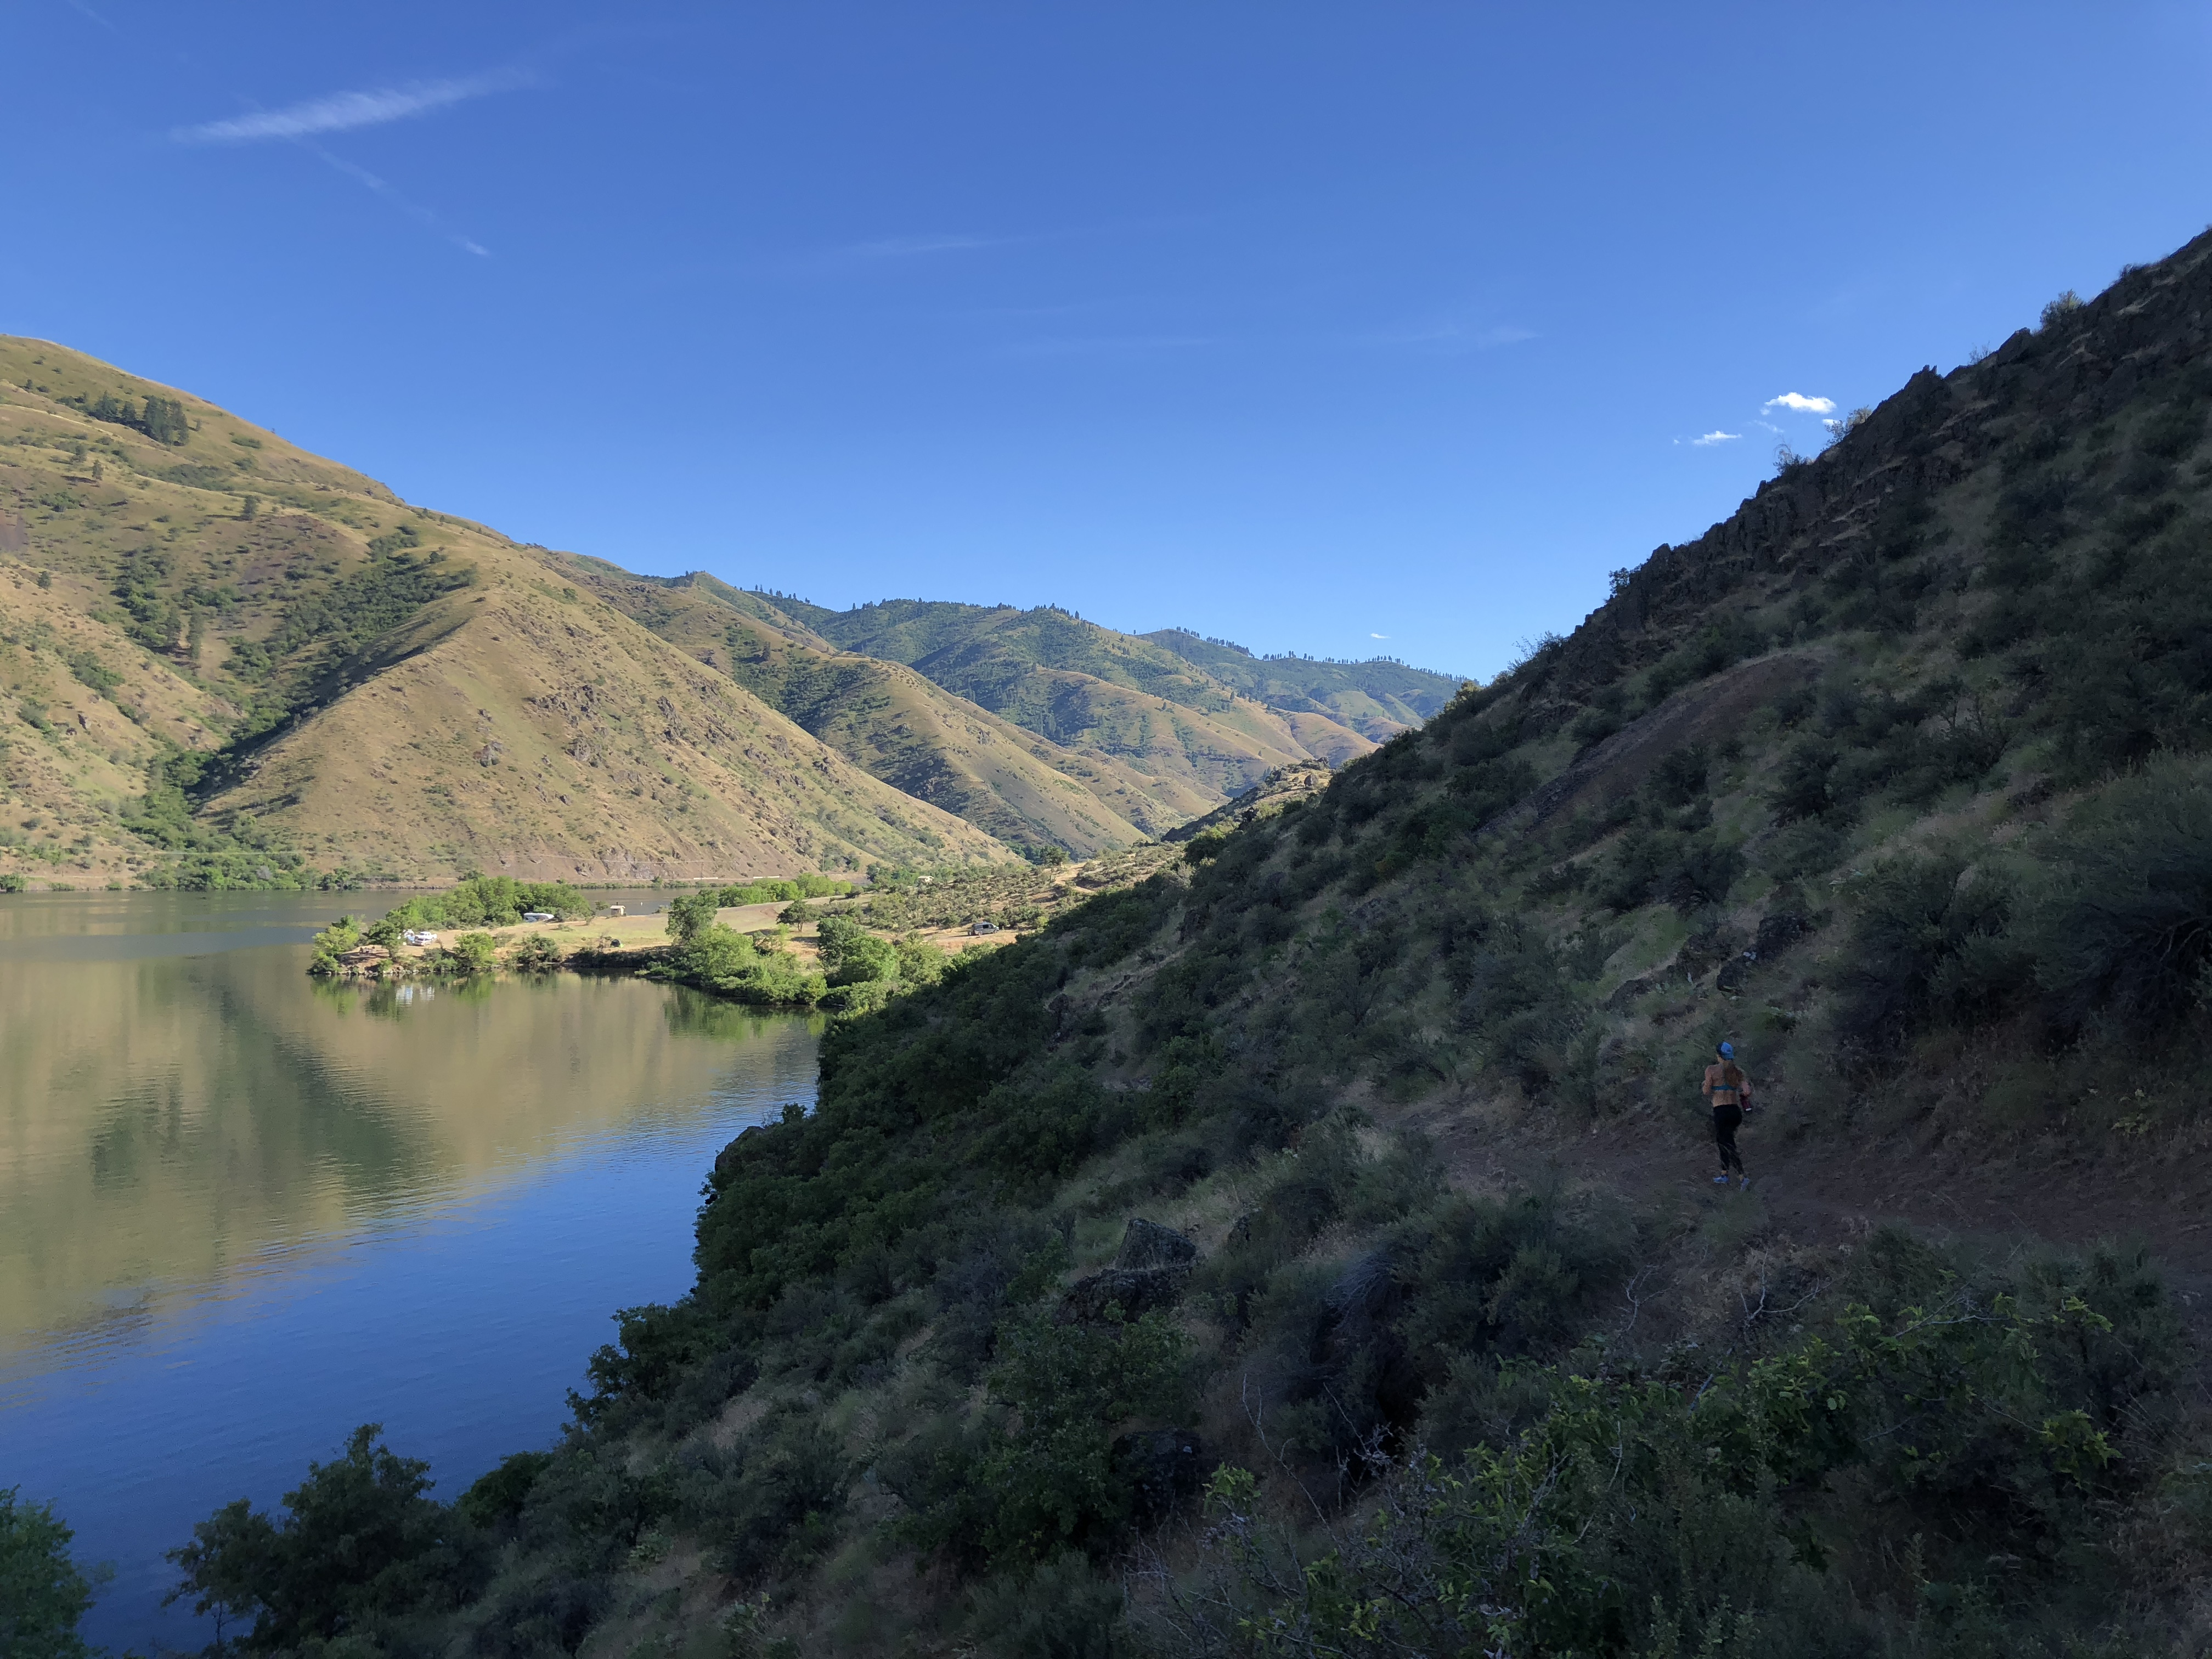 The last few steps until getting back to the van in Hells Canyon